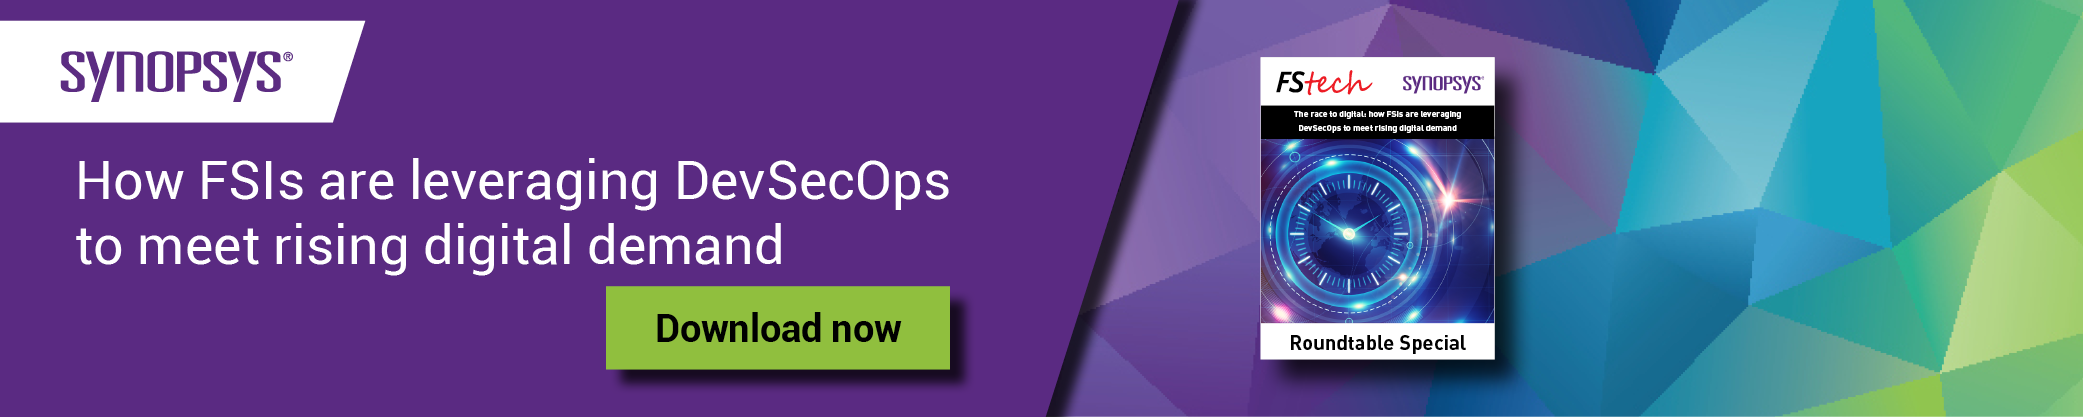 eBook: How FSIs leverage DevSecOps to meet rise of digital demand   Synopsys